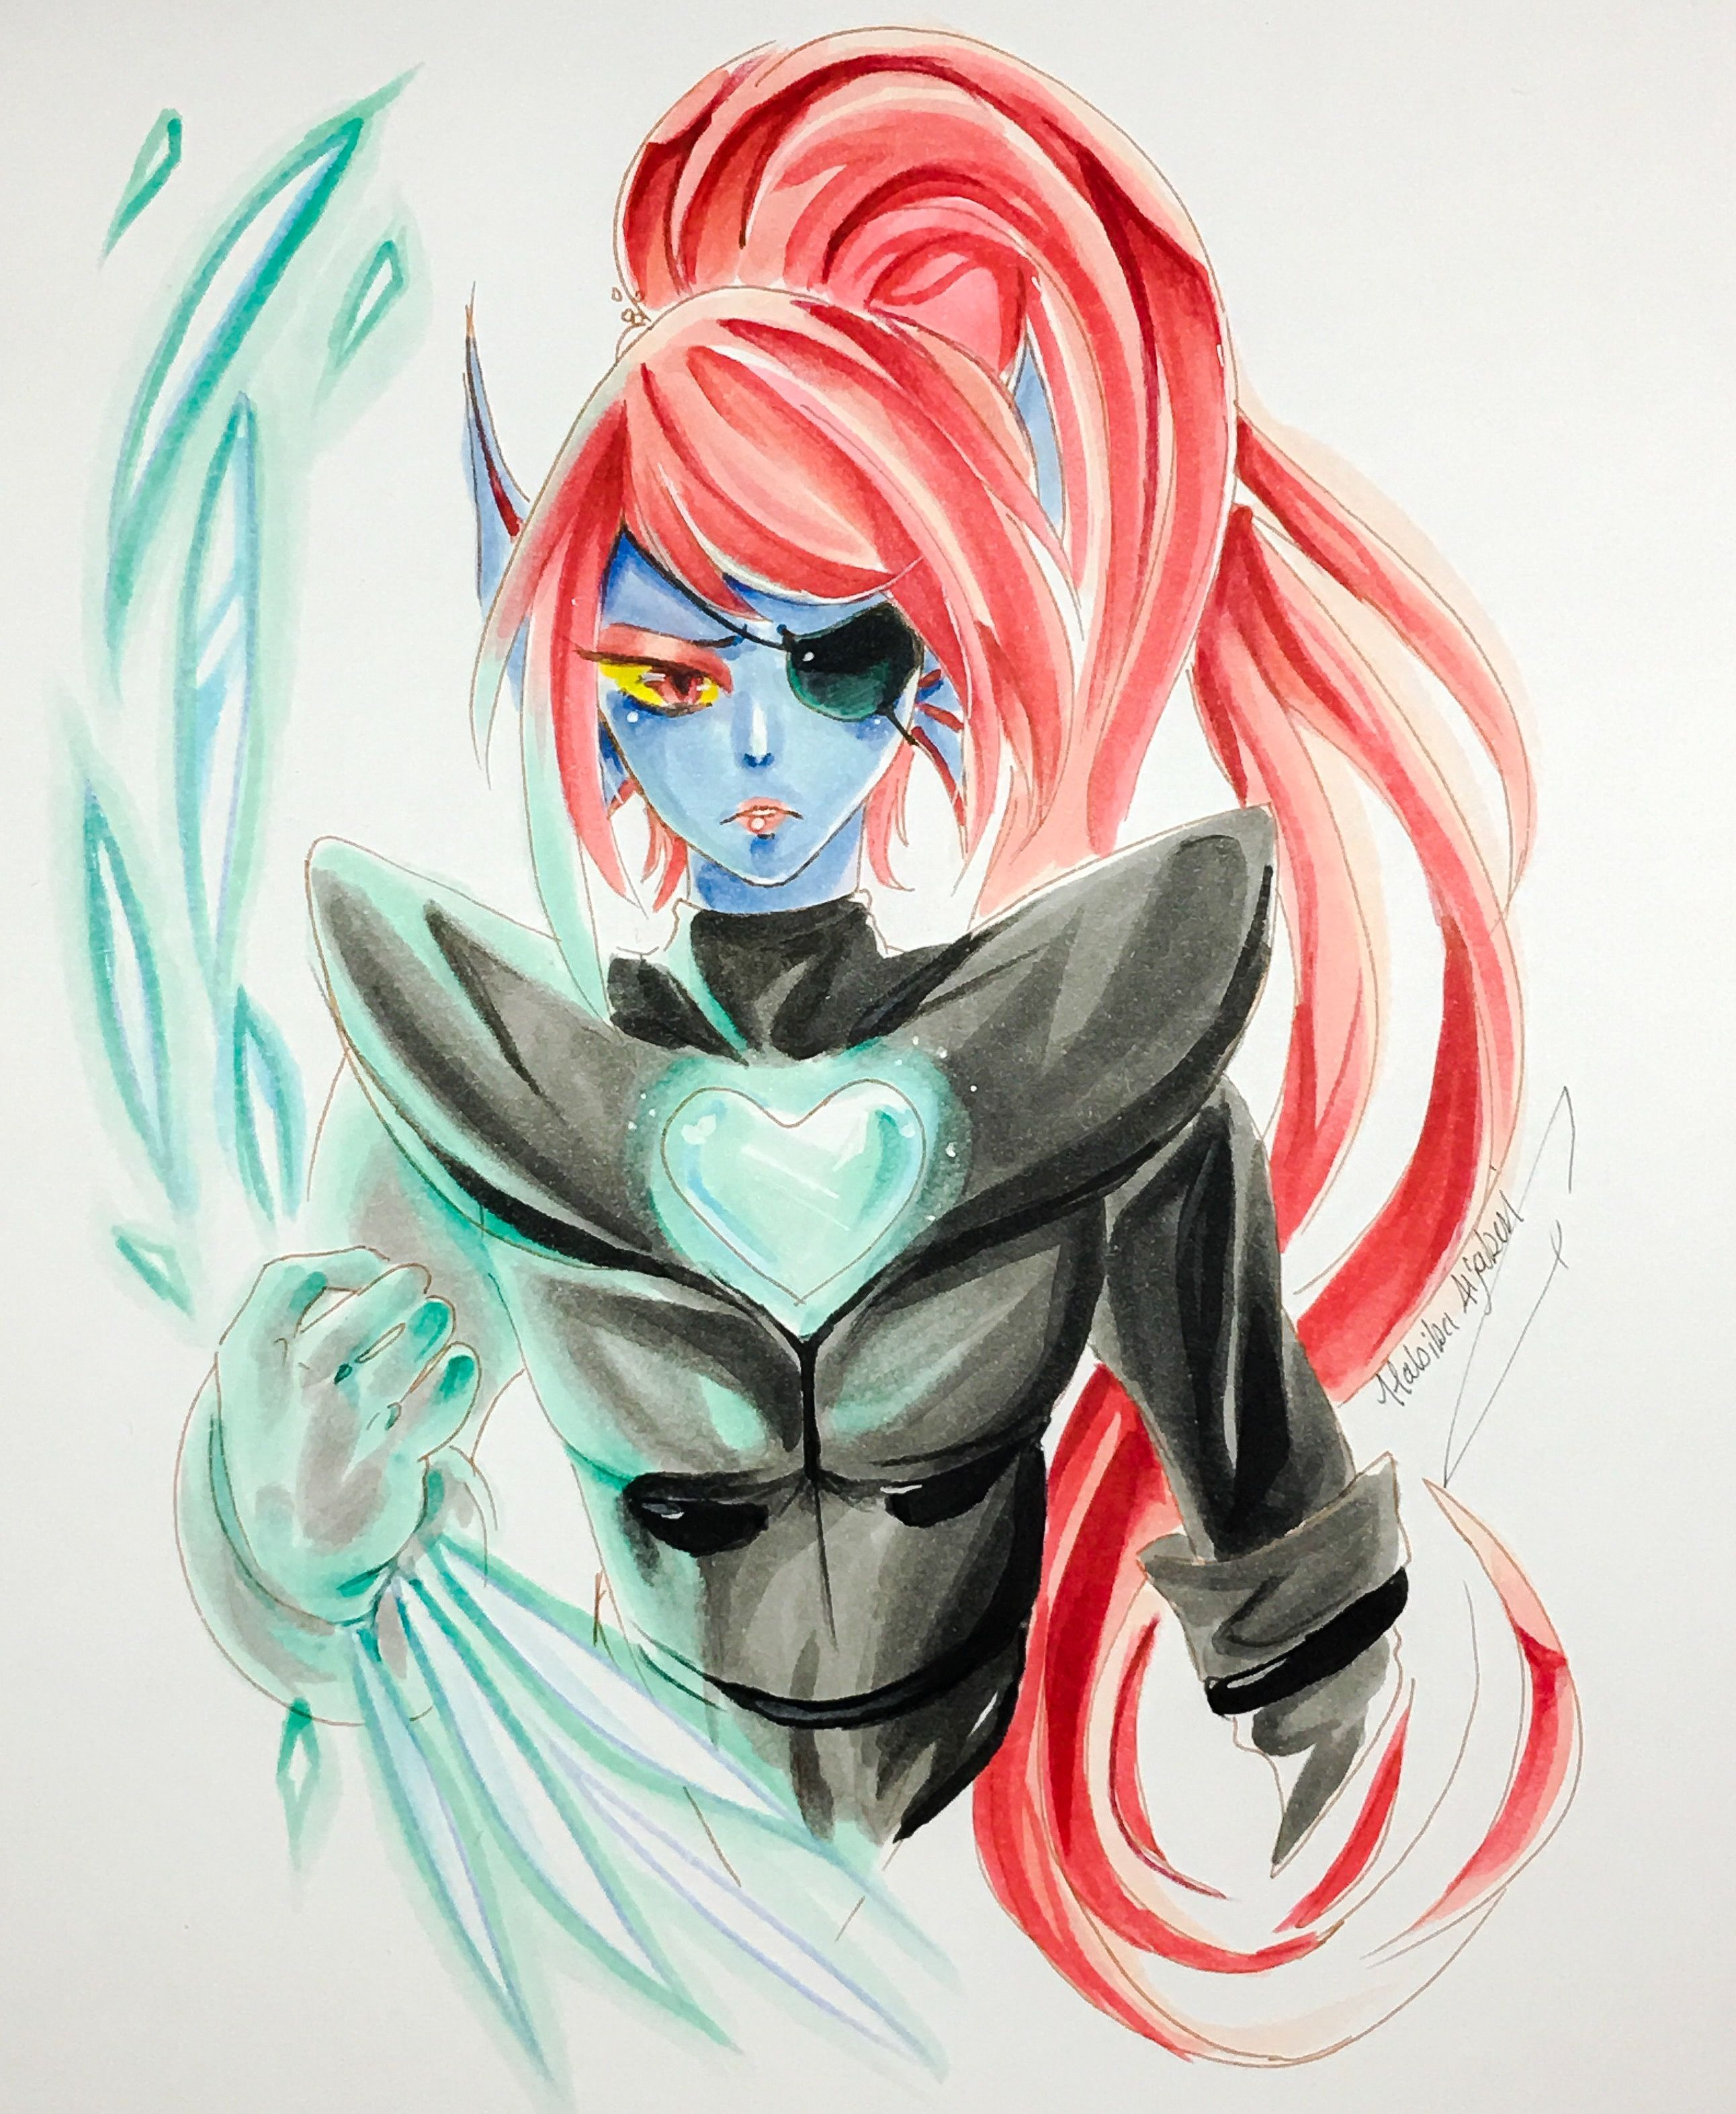 Fanart for #undyne from #undertale used #copicsketch